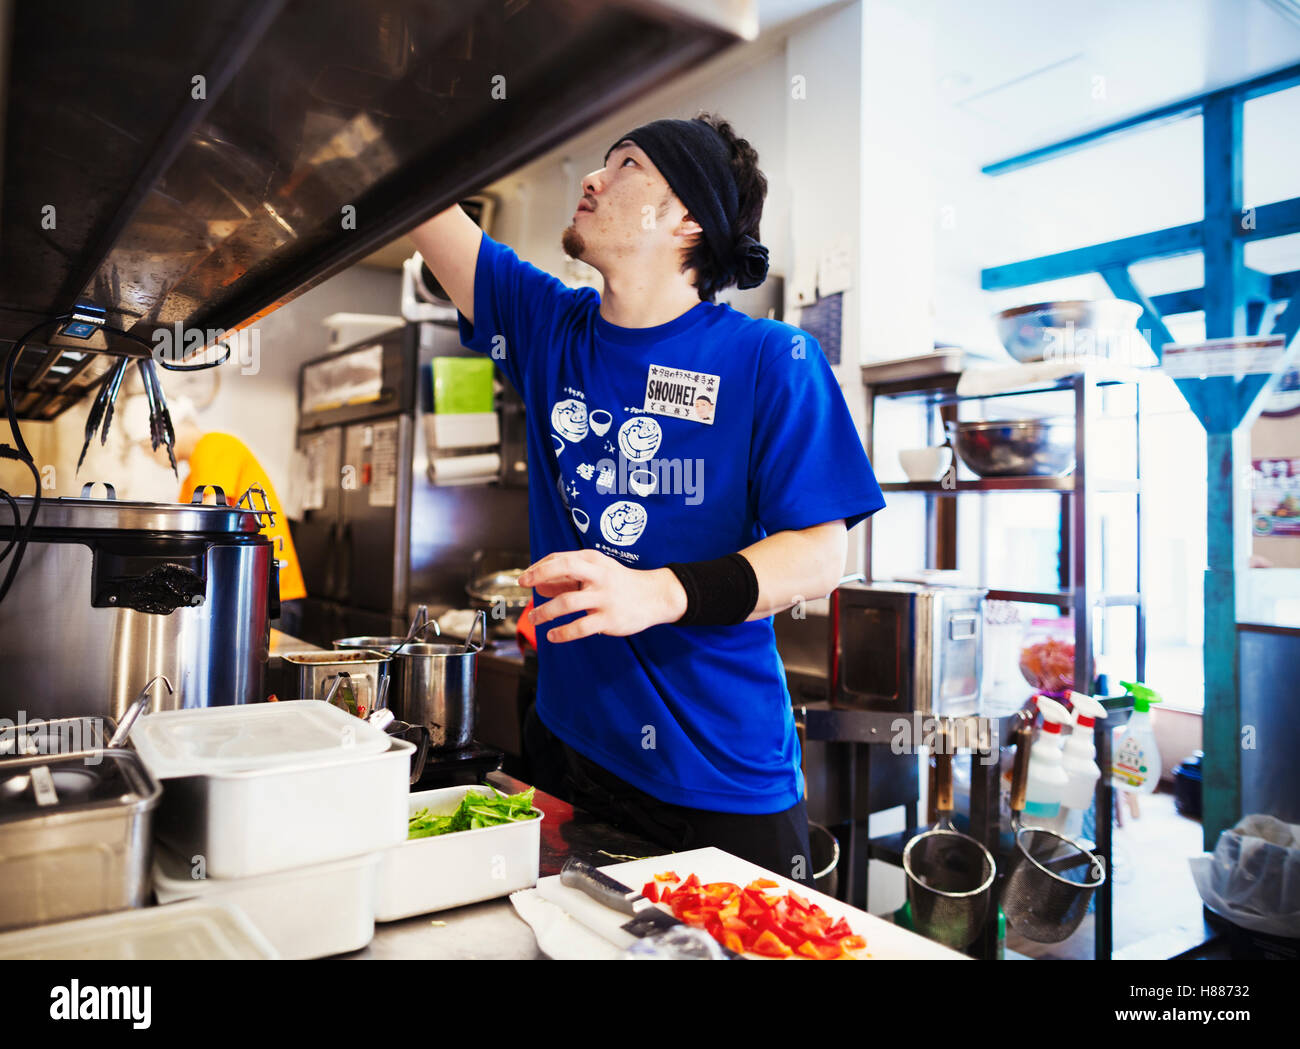 The ramen noodle shop. Staff in a small kitchen preparing food - Stock Image